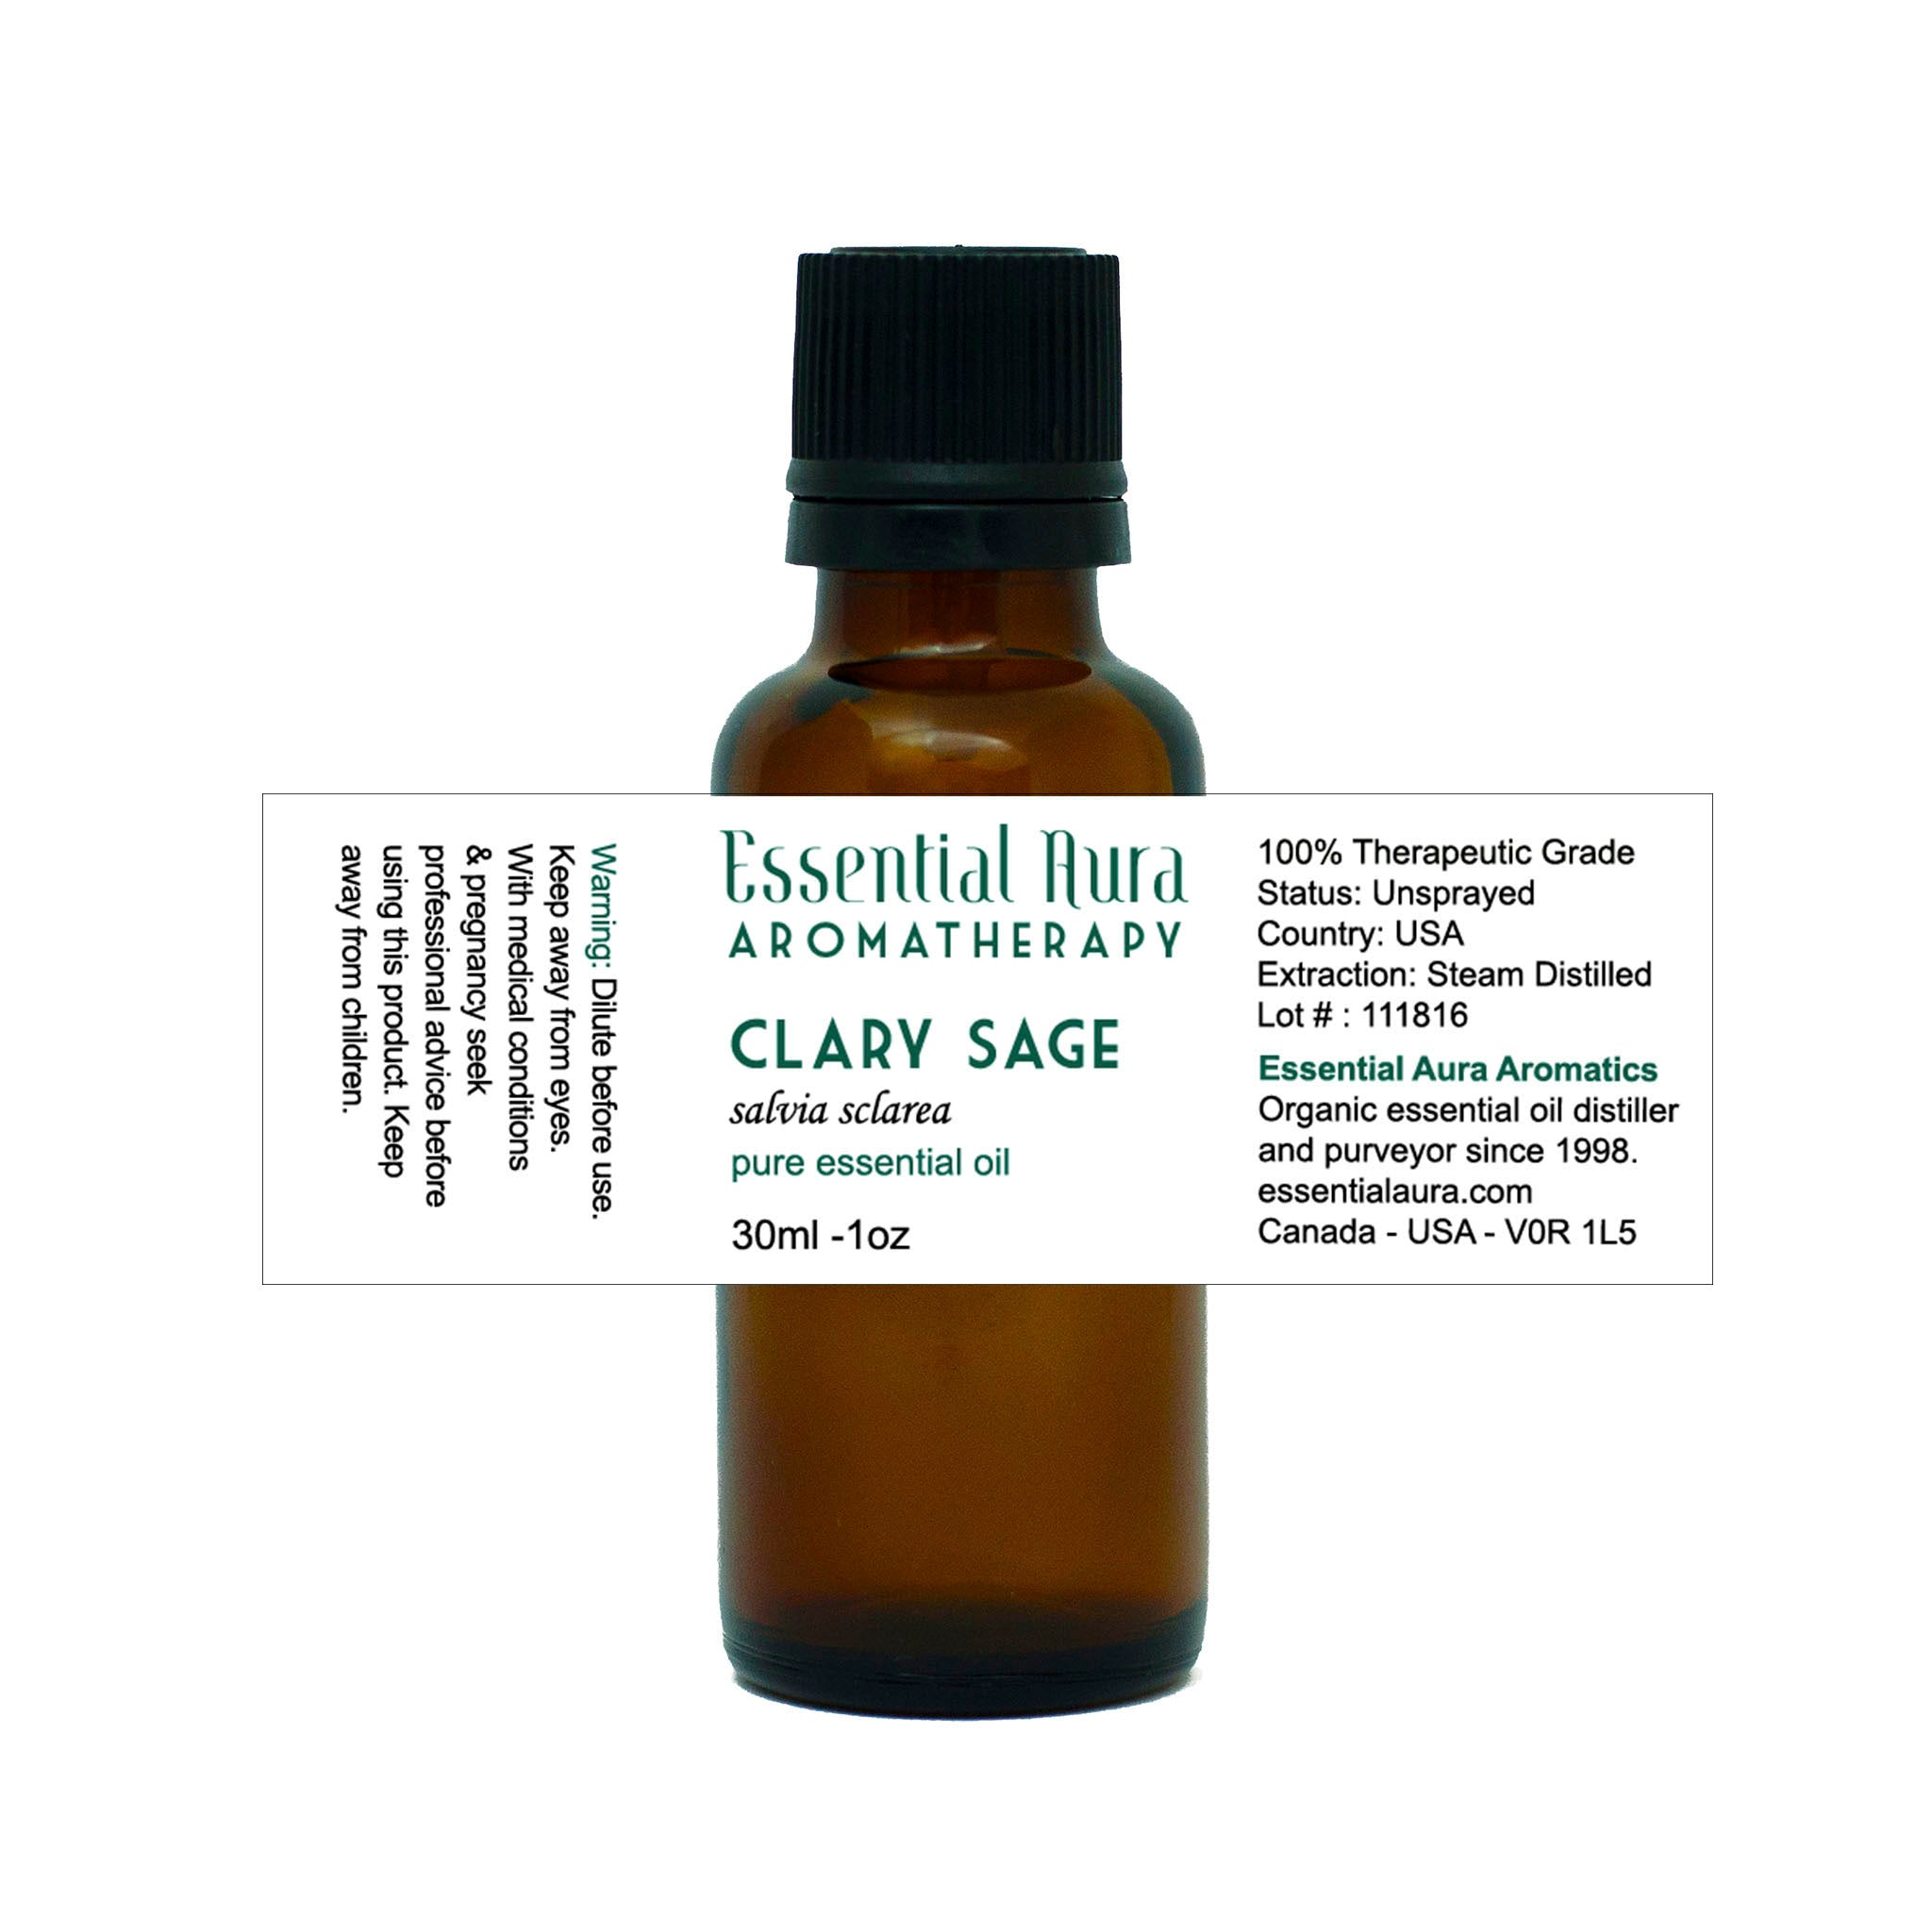 clary sage essential oil in bottle